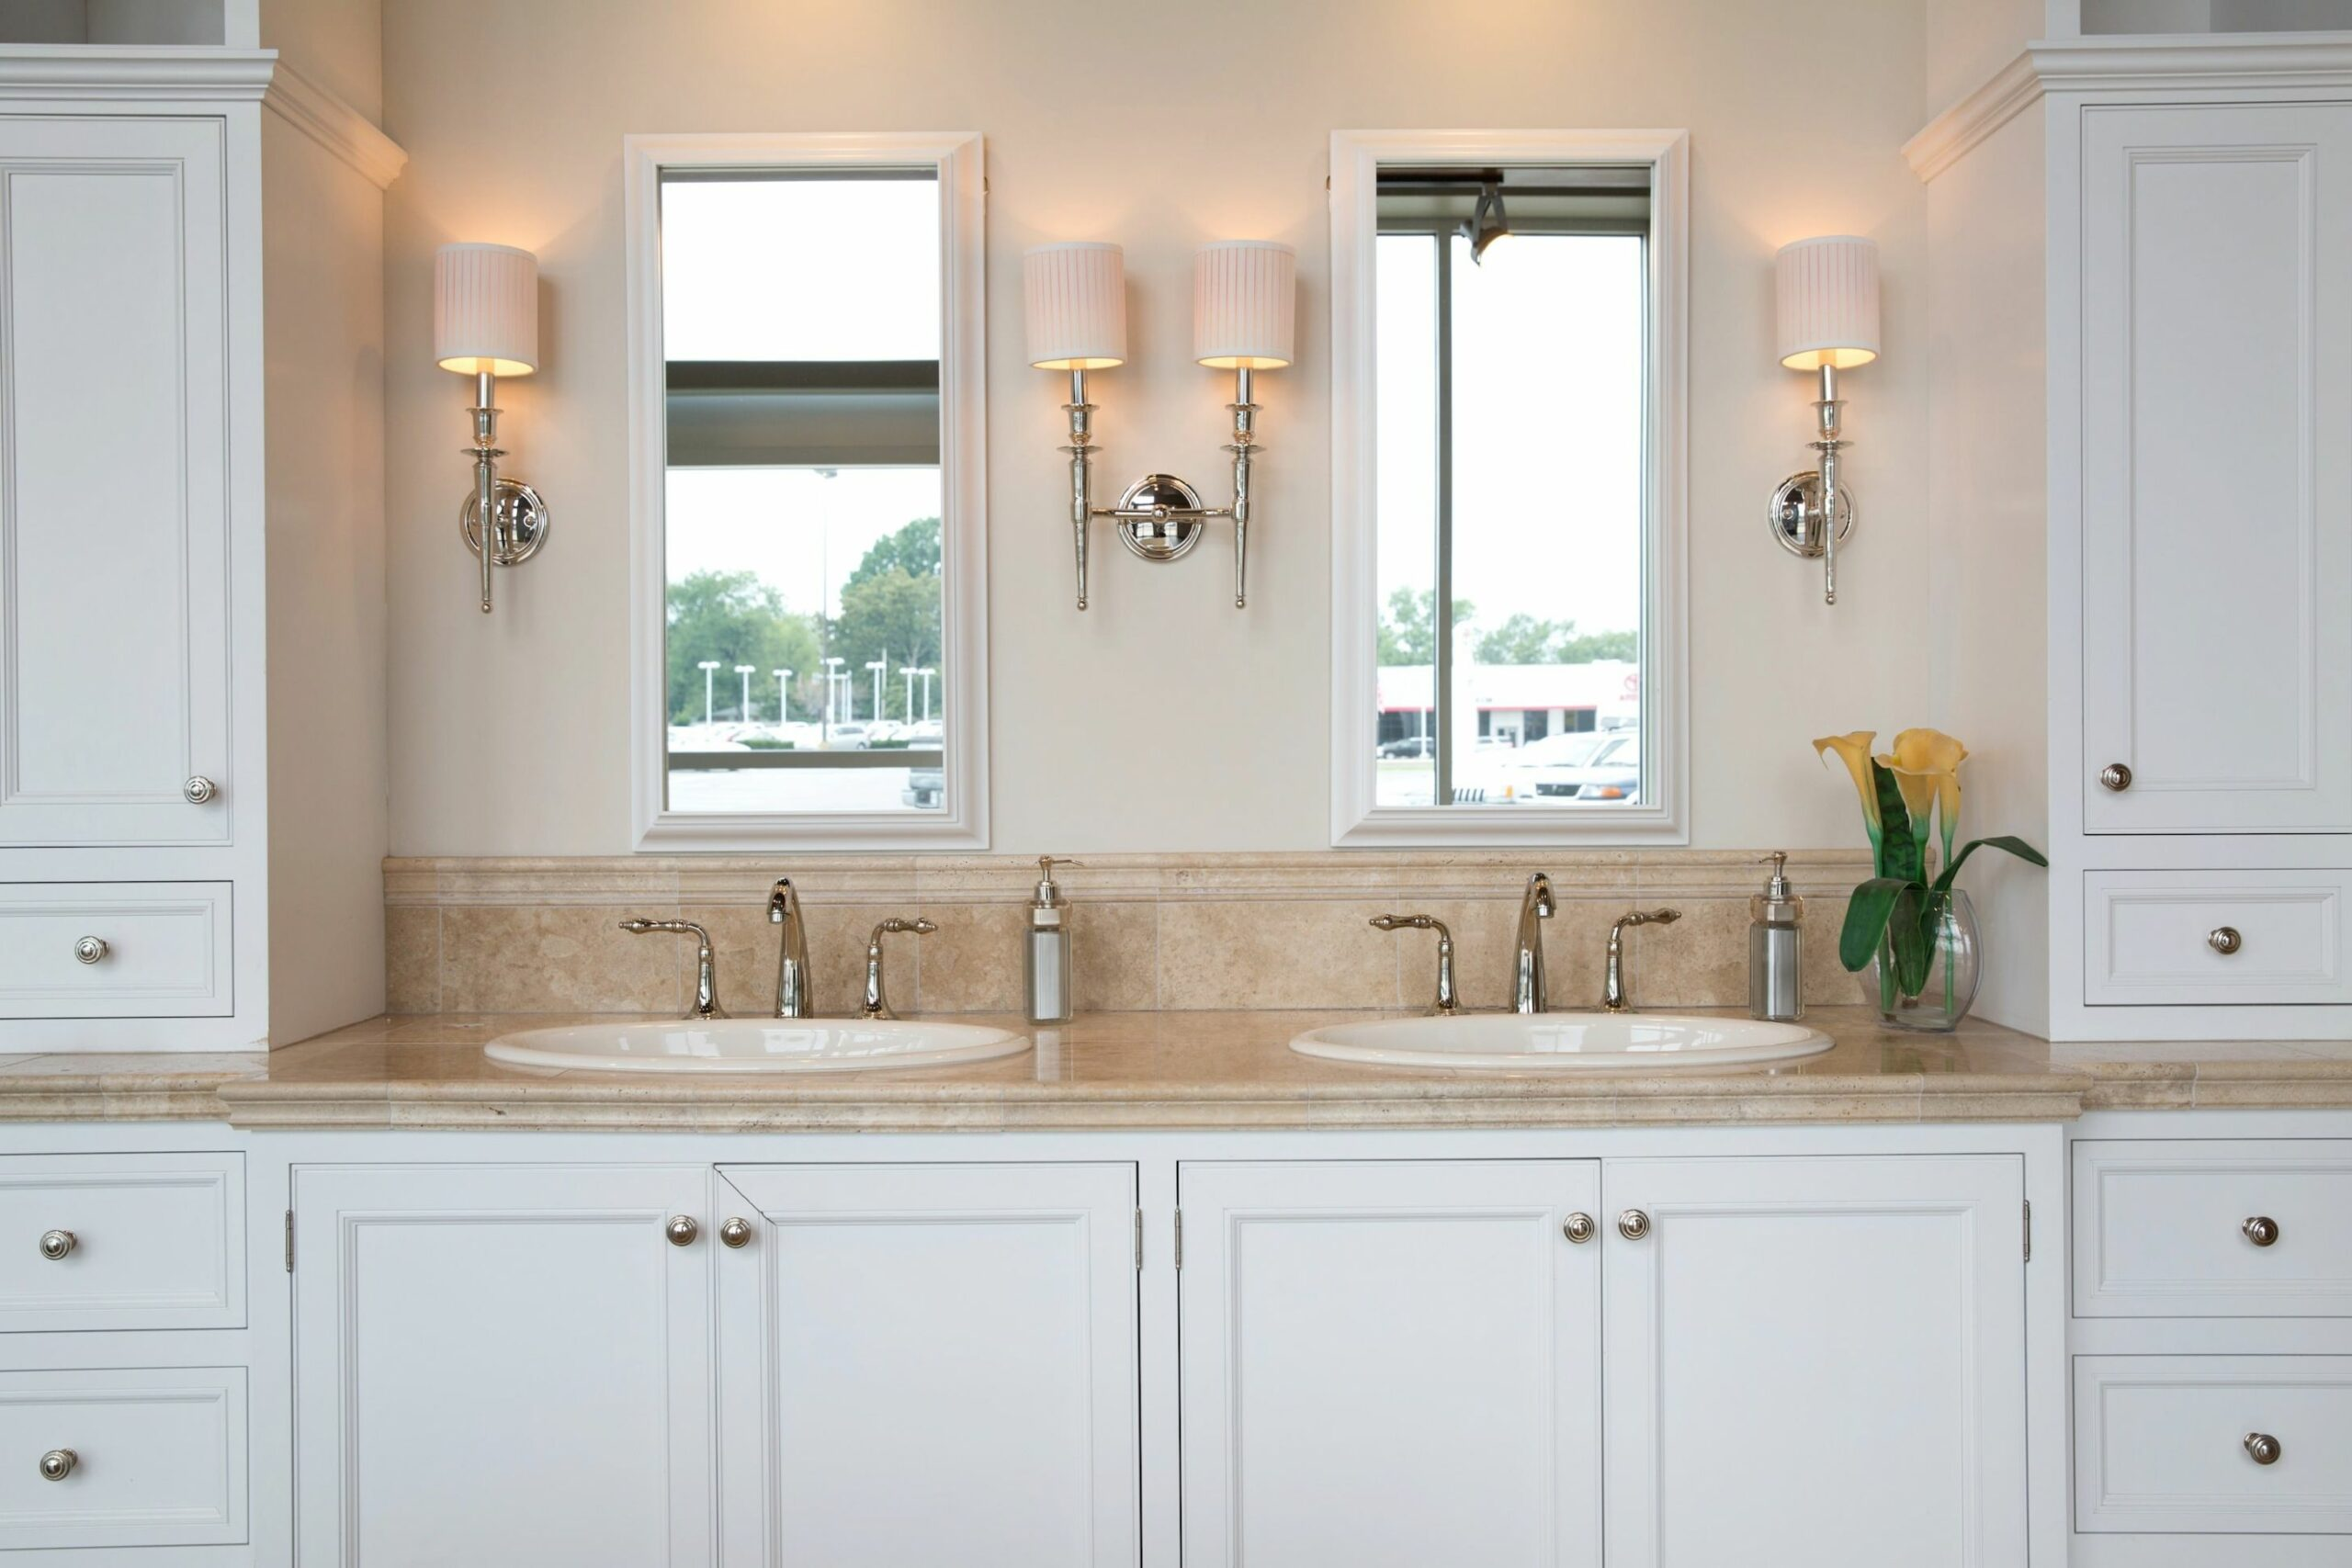 What Is a Jack and Jill Bathroom? | Angie's List